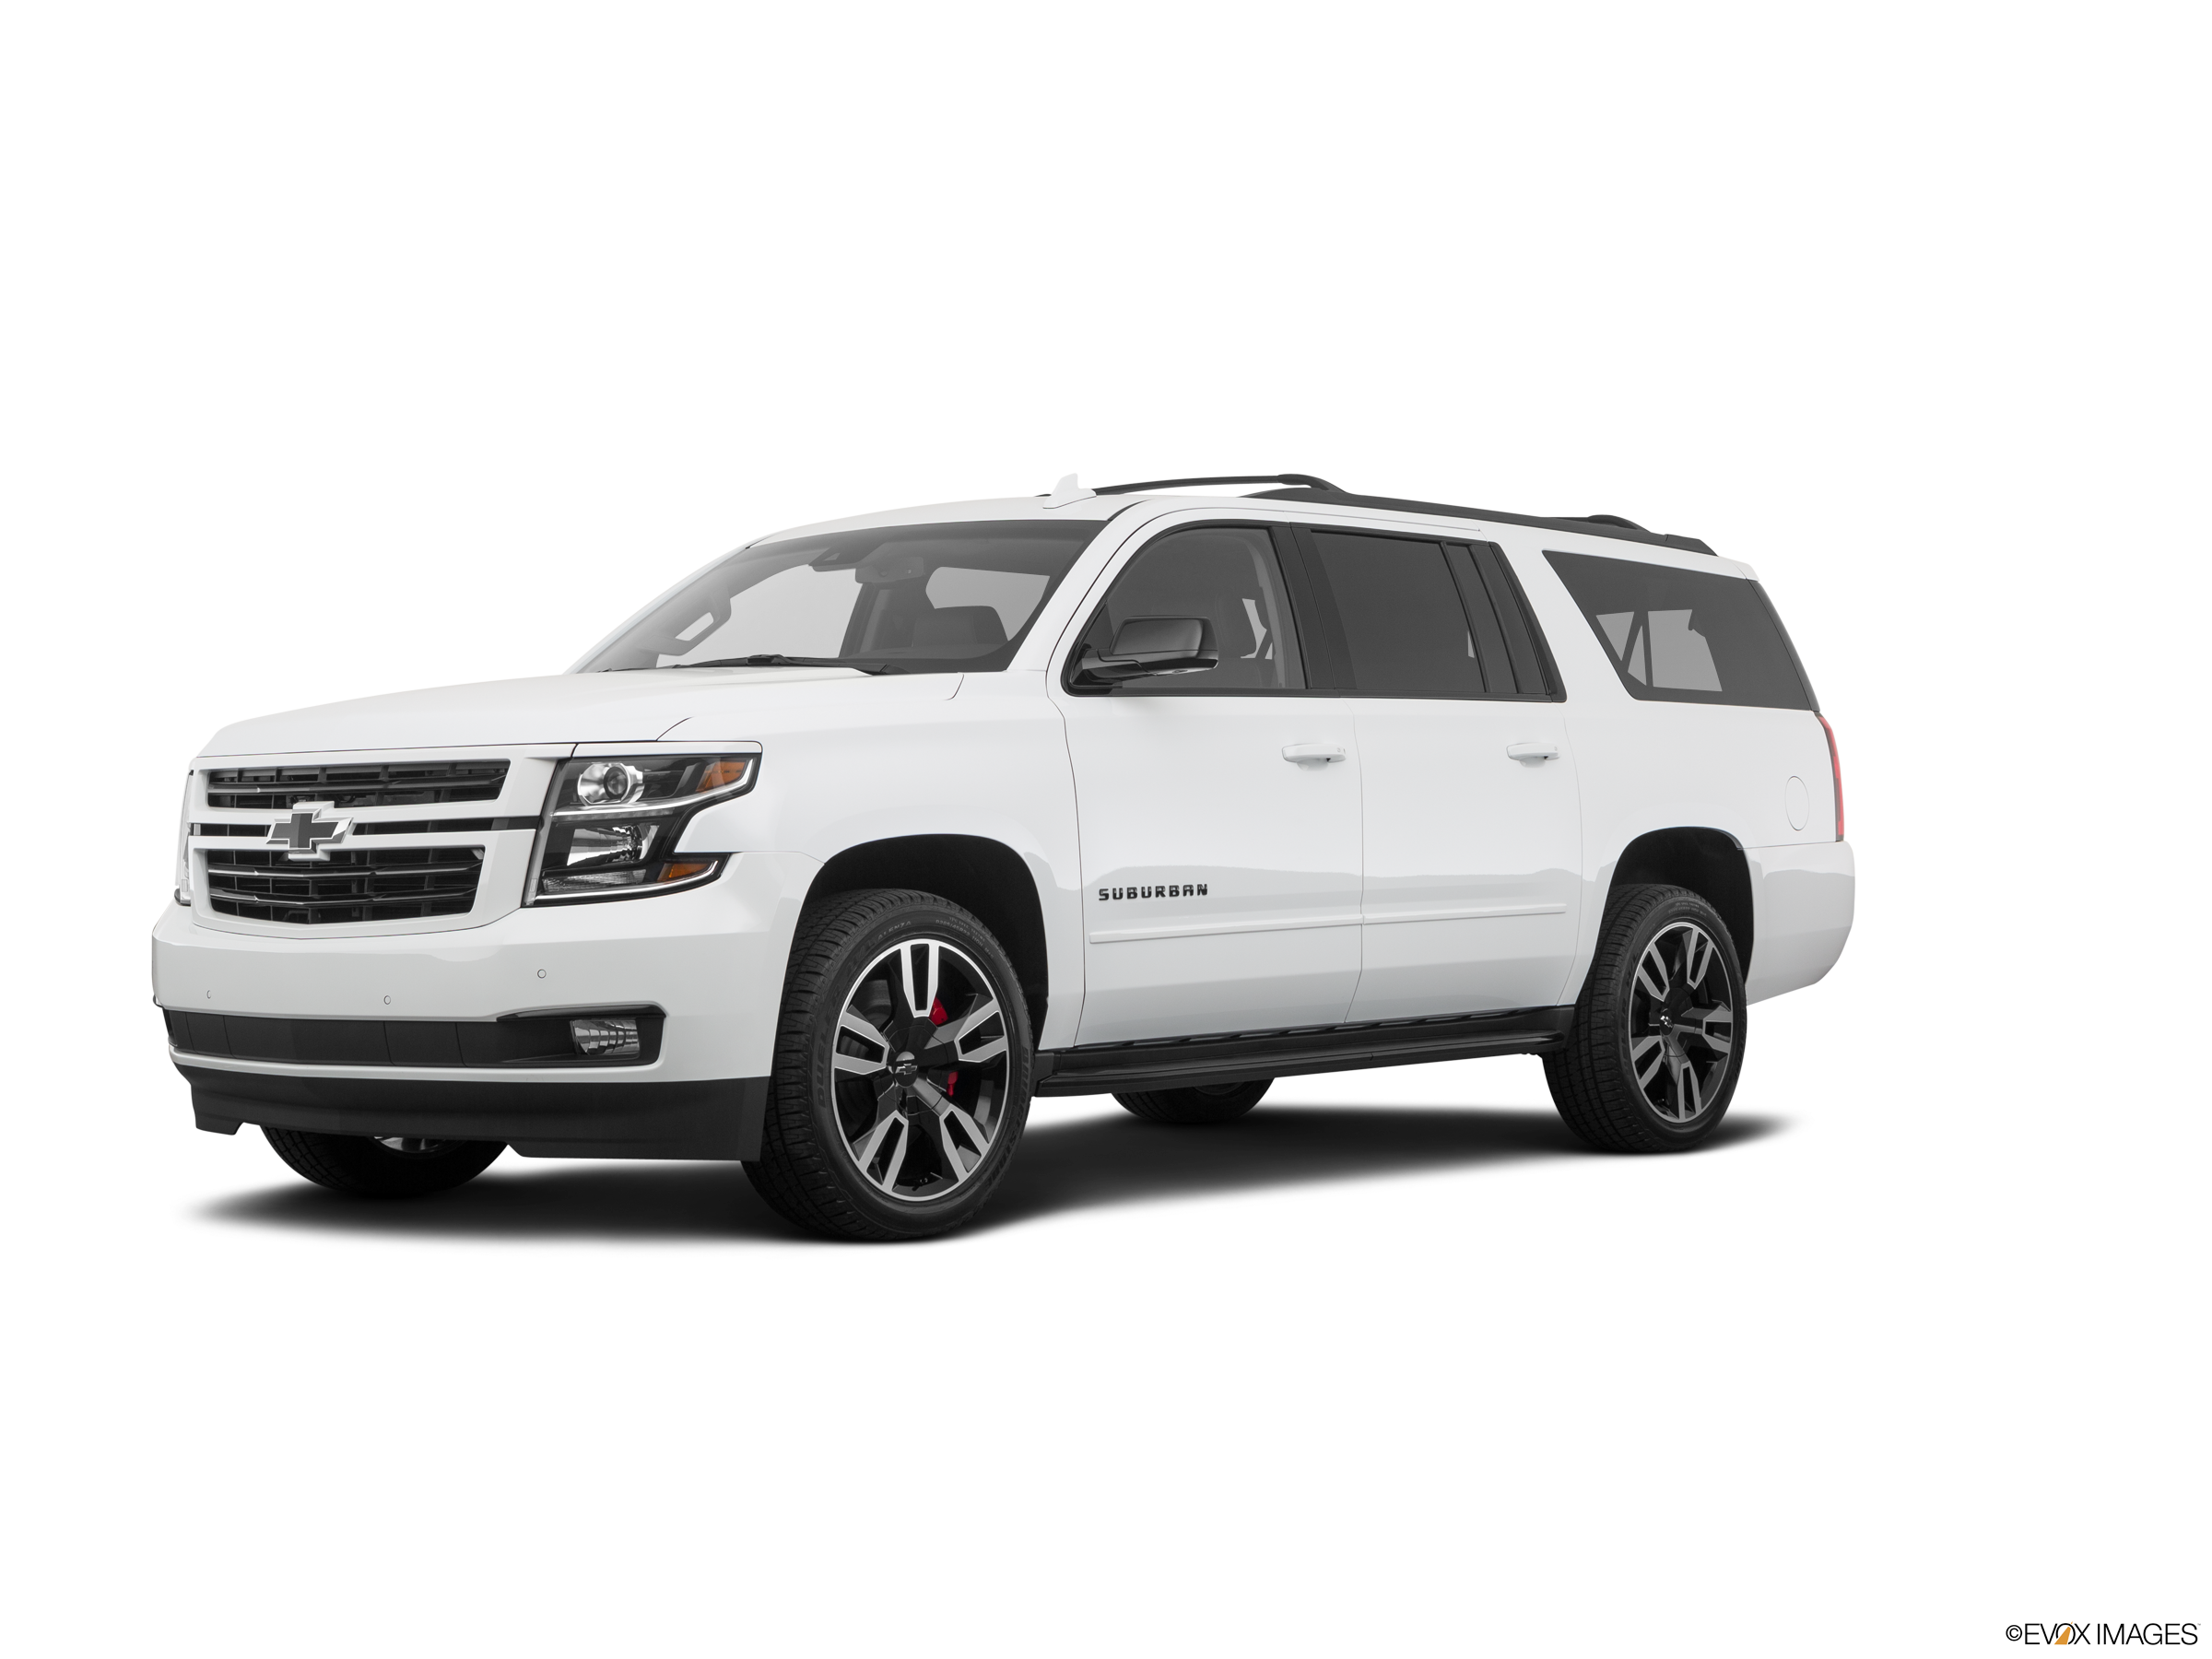 2019 Chevrolet Suburban Values Cars For Sale Kelley Blue Book